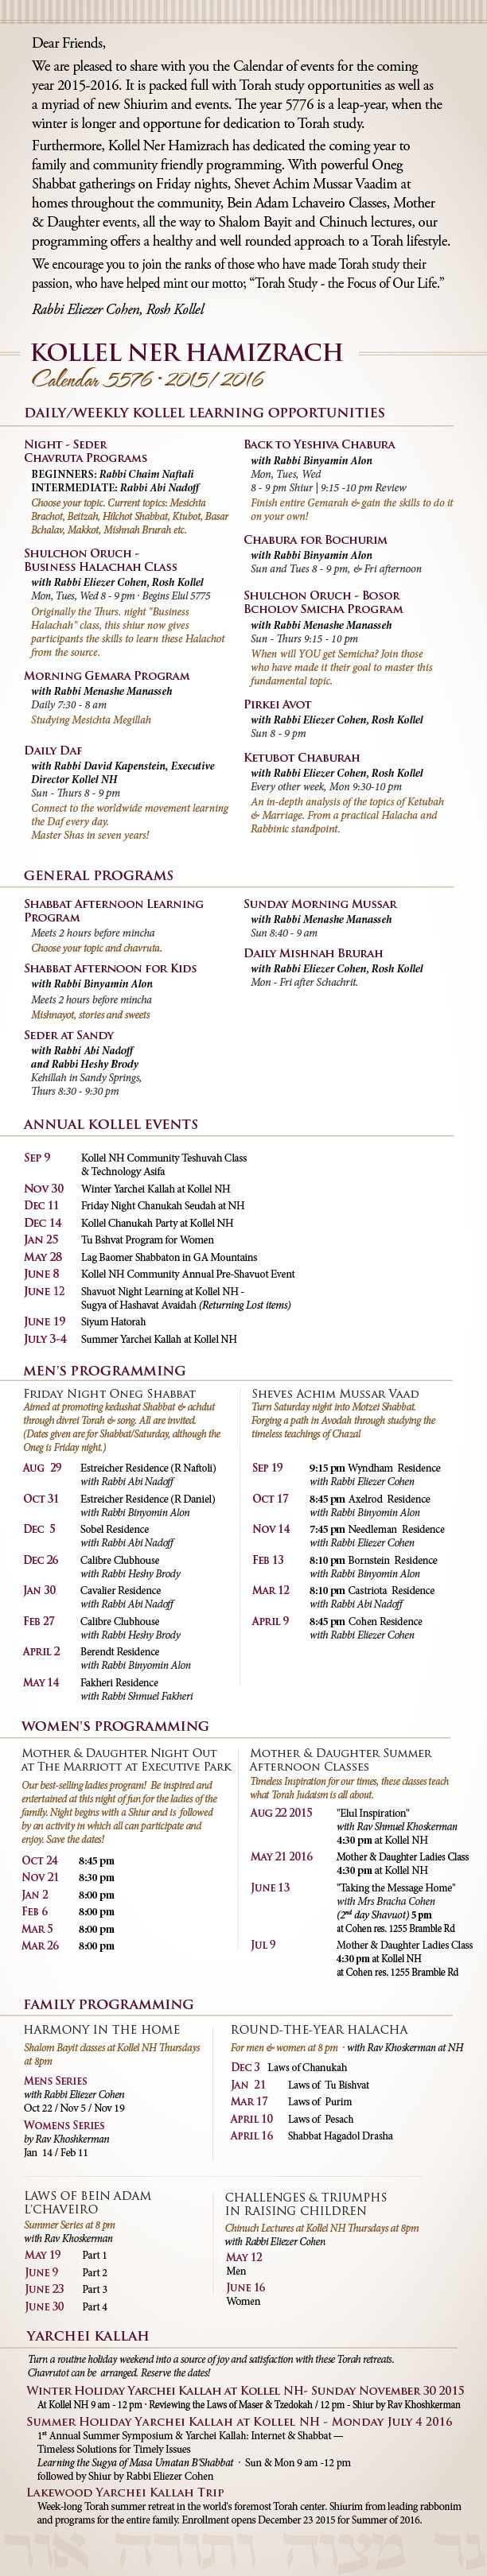 Kollel NH Calendar 2015 long final